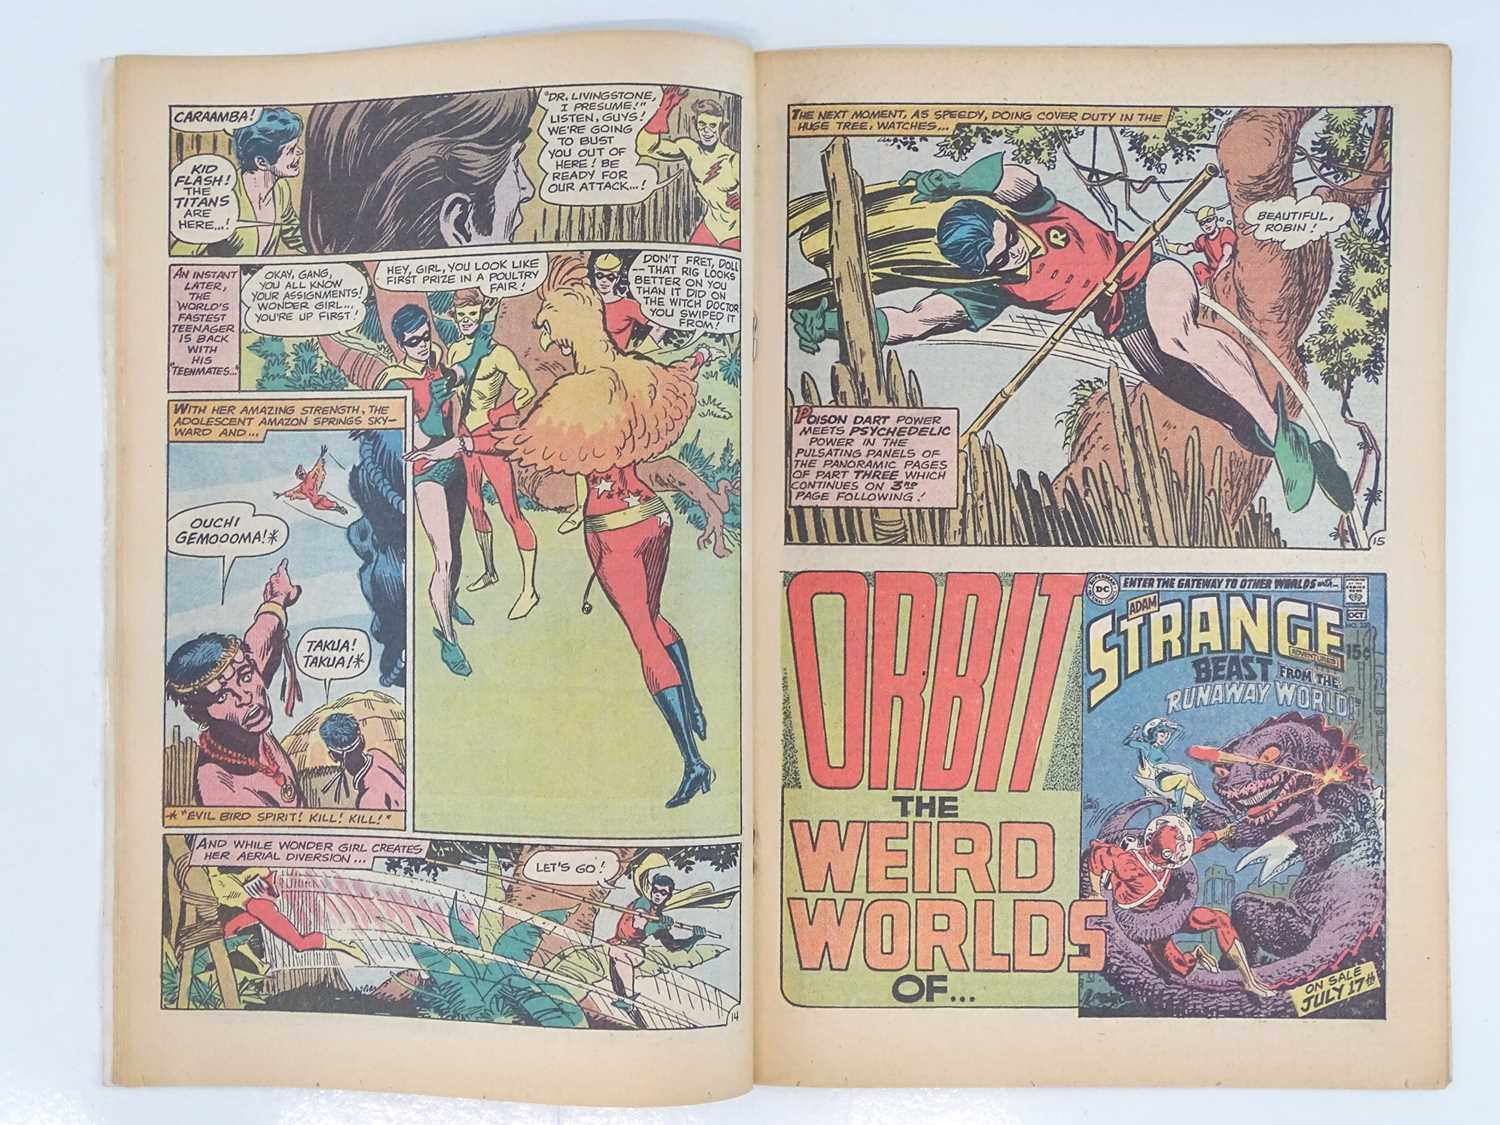 TEEN TITANS #23 - (1969 - DC - UK Cover Price) - Classic DC Cover - New costume for Wonder Girl - Image 5 of 9